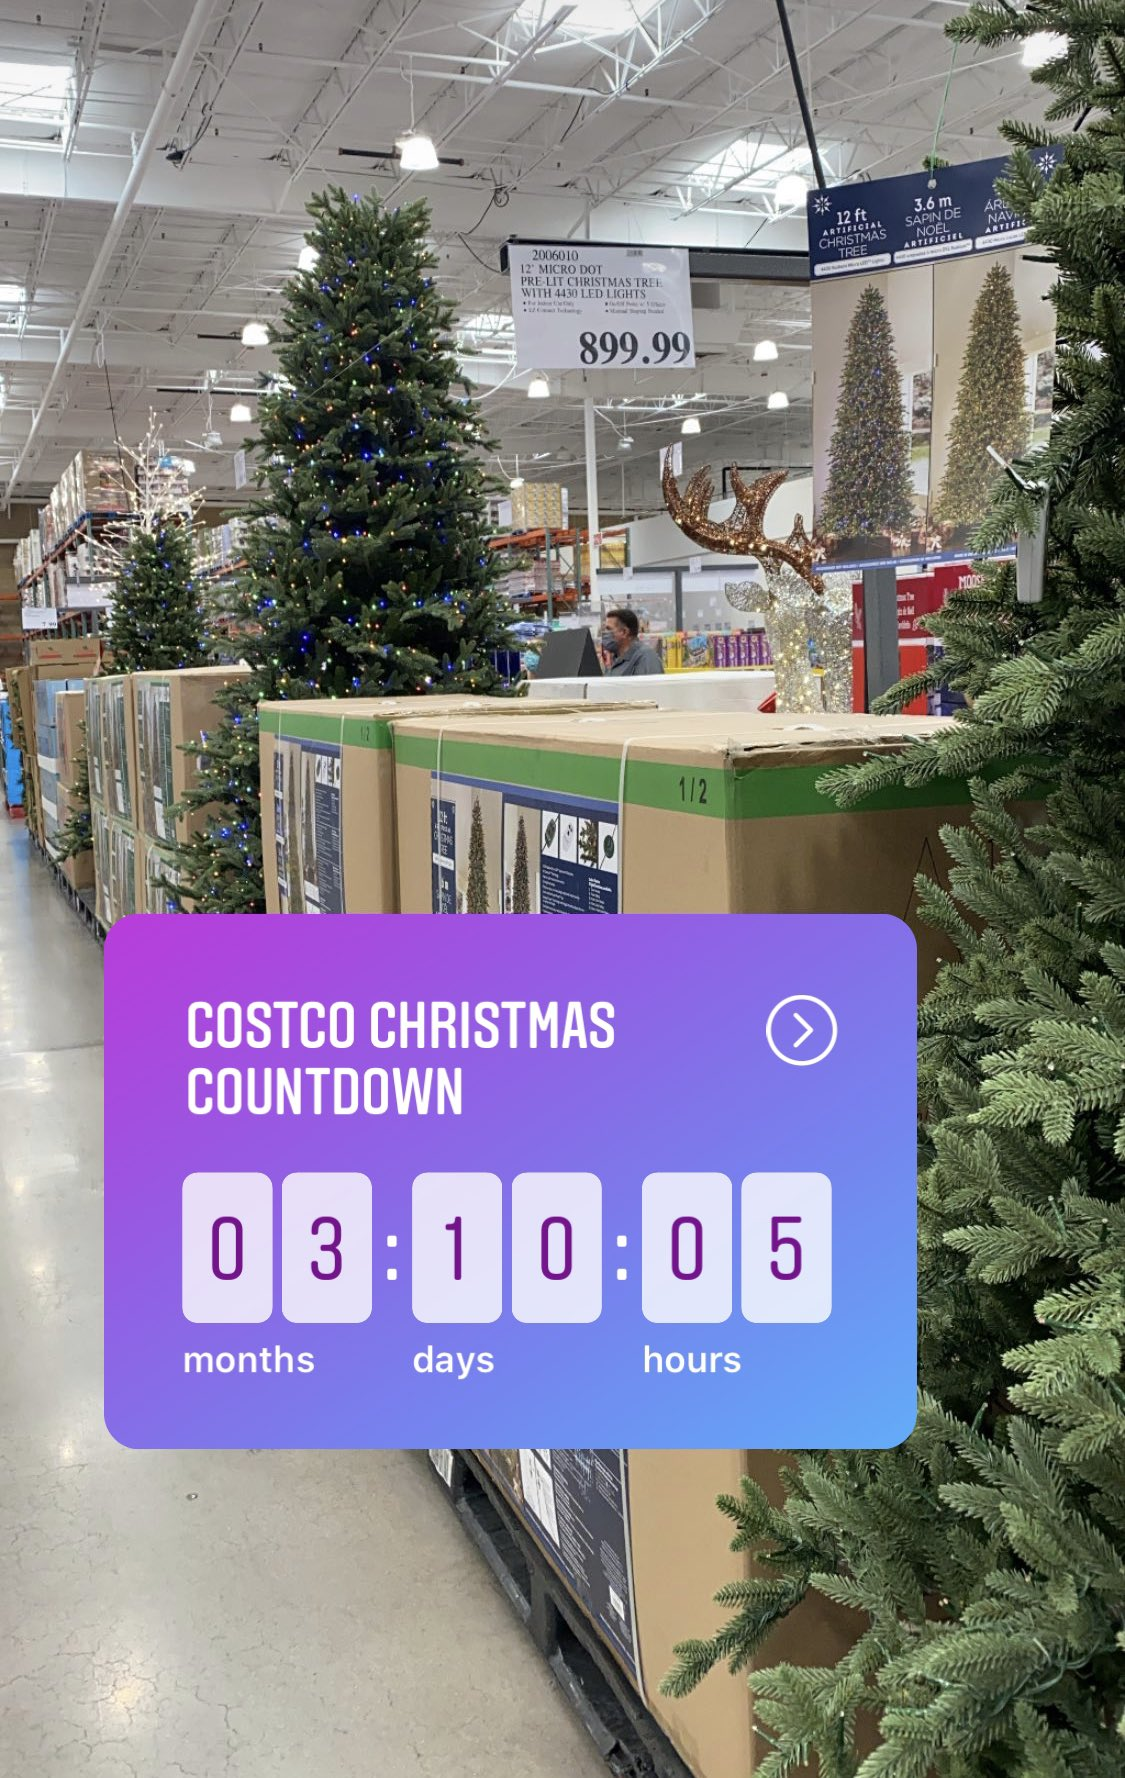 Tom Garrity On Twitter Saw This At Costco Today And I Am Not Talking About The 899 Tree Christmas